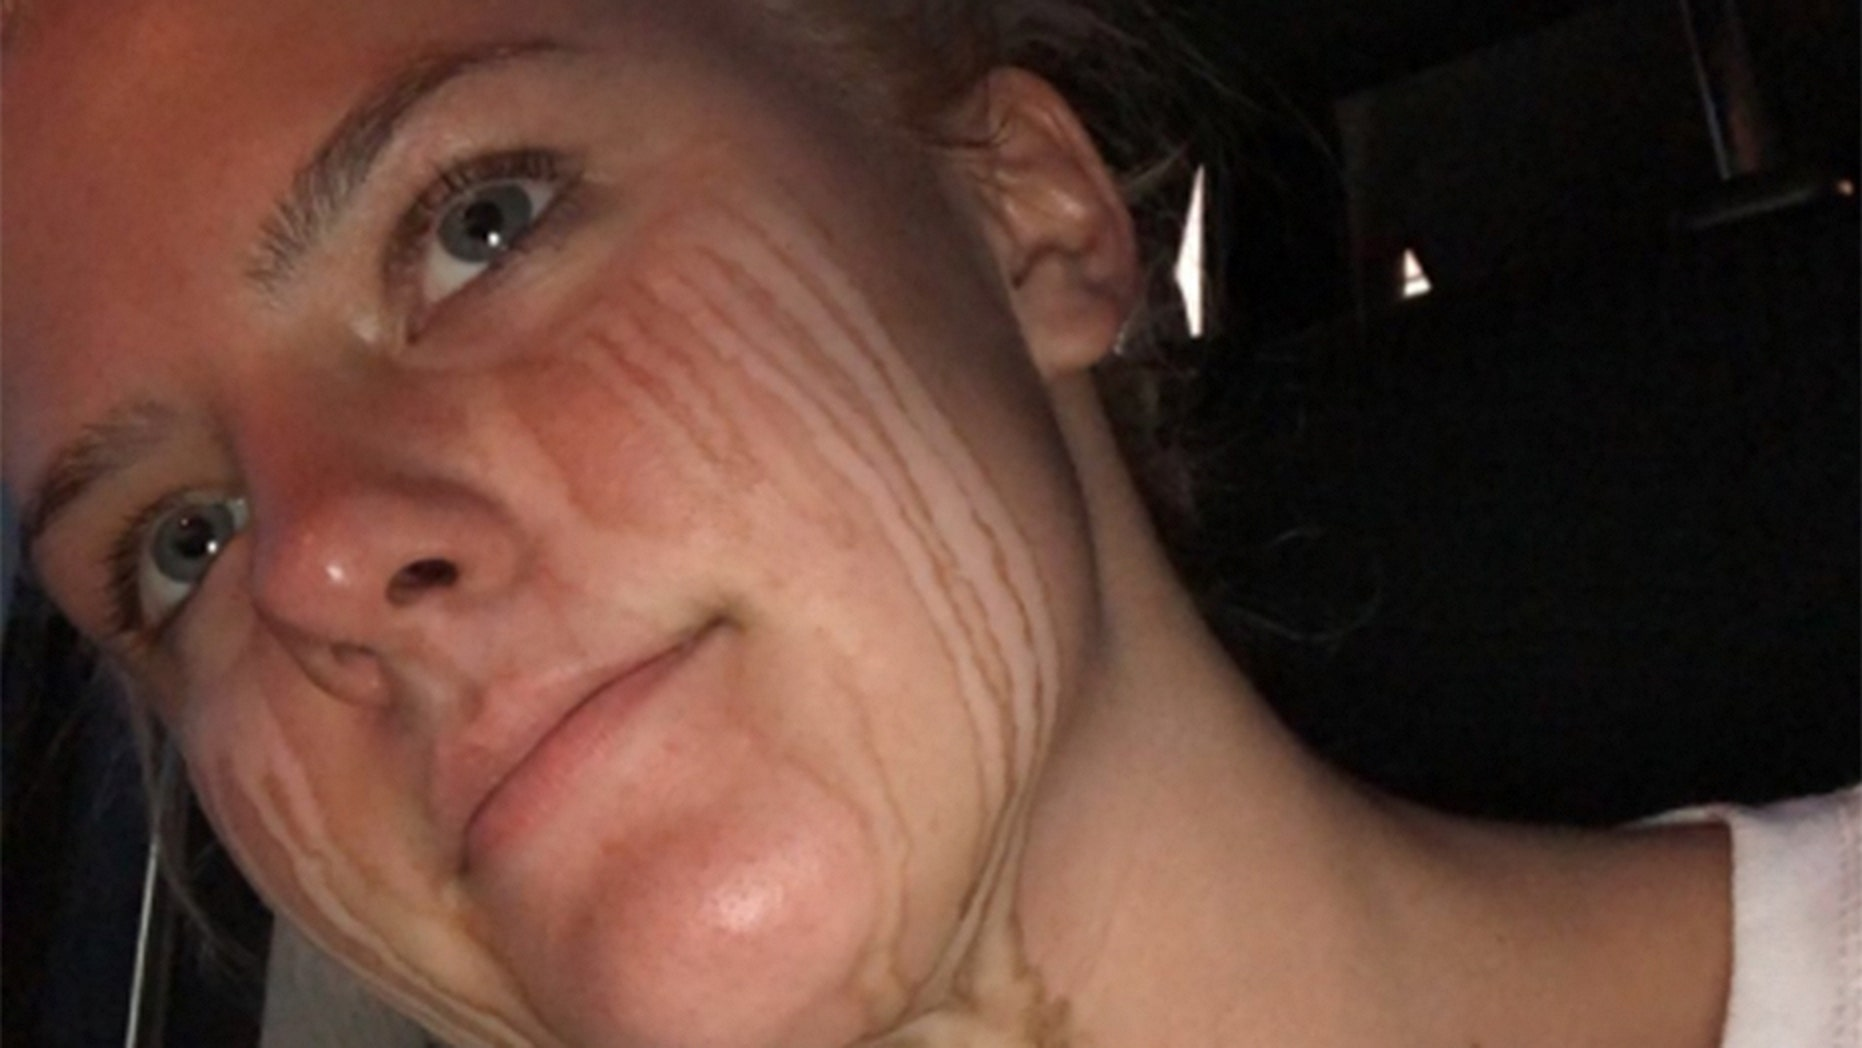 A 17-year-old high school student's spray tan fail is making the internet laugh -- and relate.